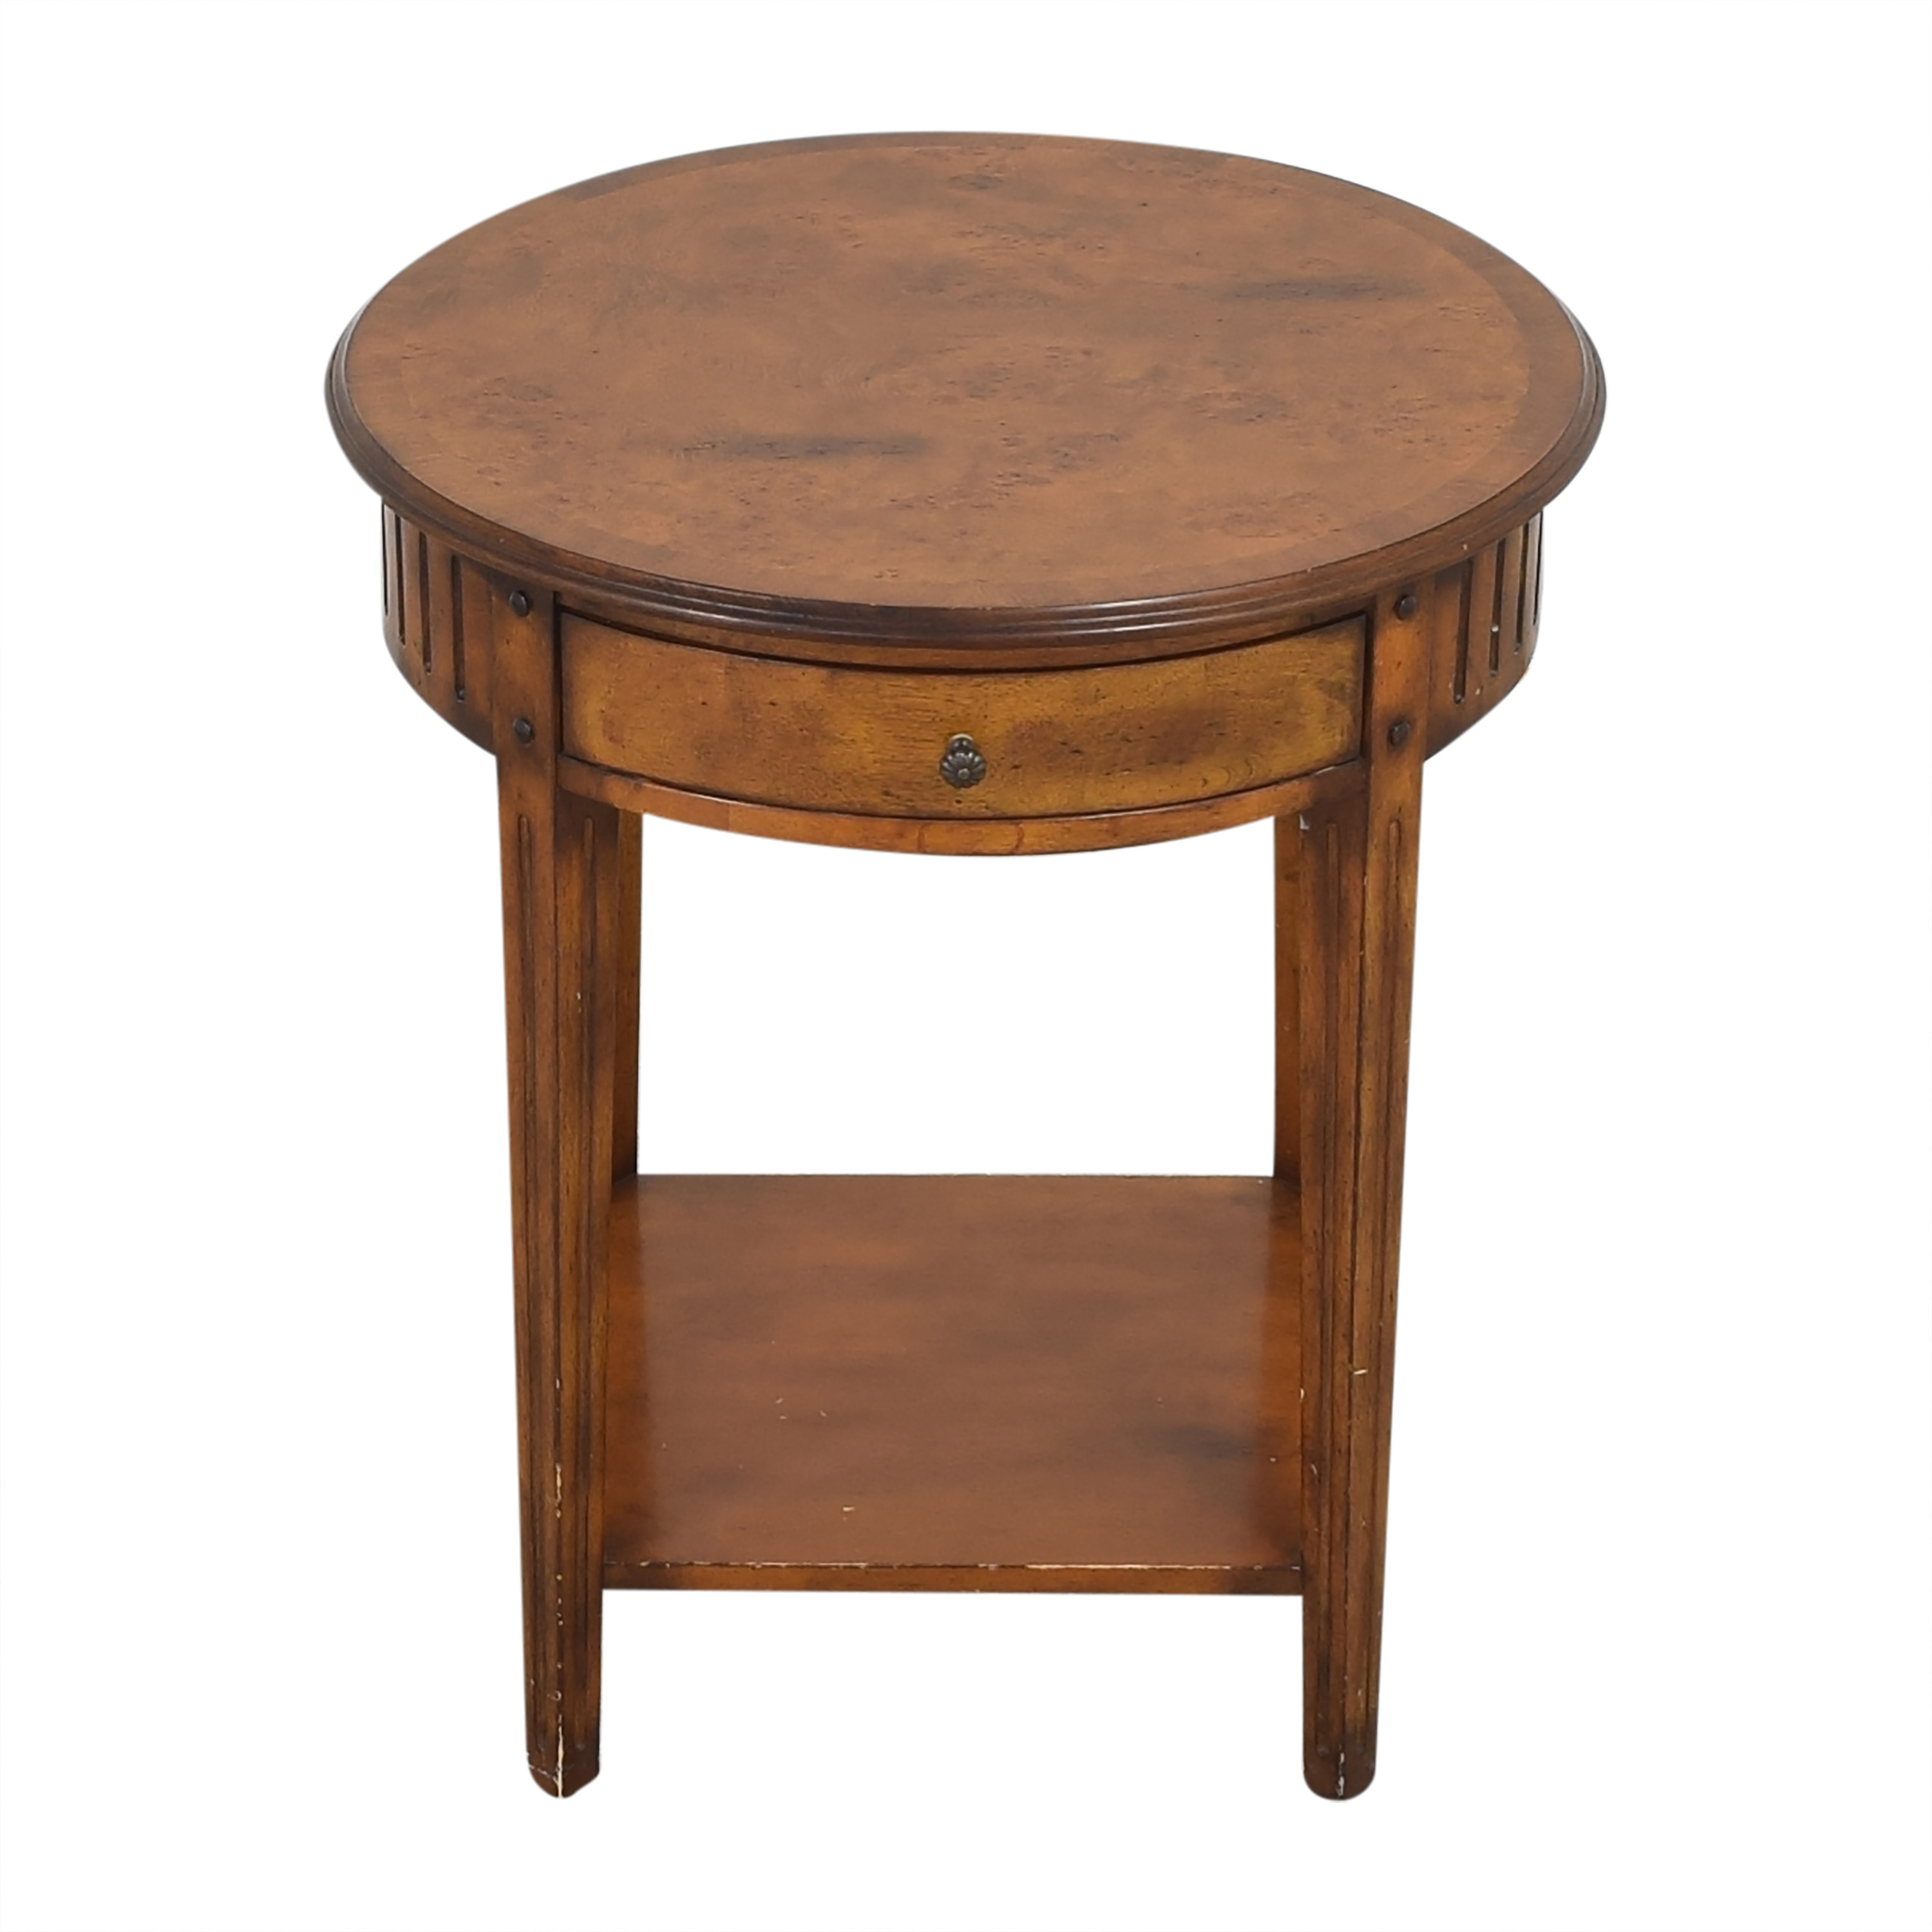 Accents Beyond Accents Beyond Round End Table dimensions